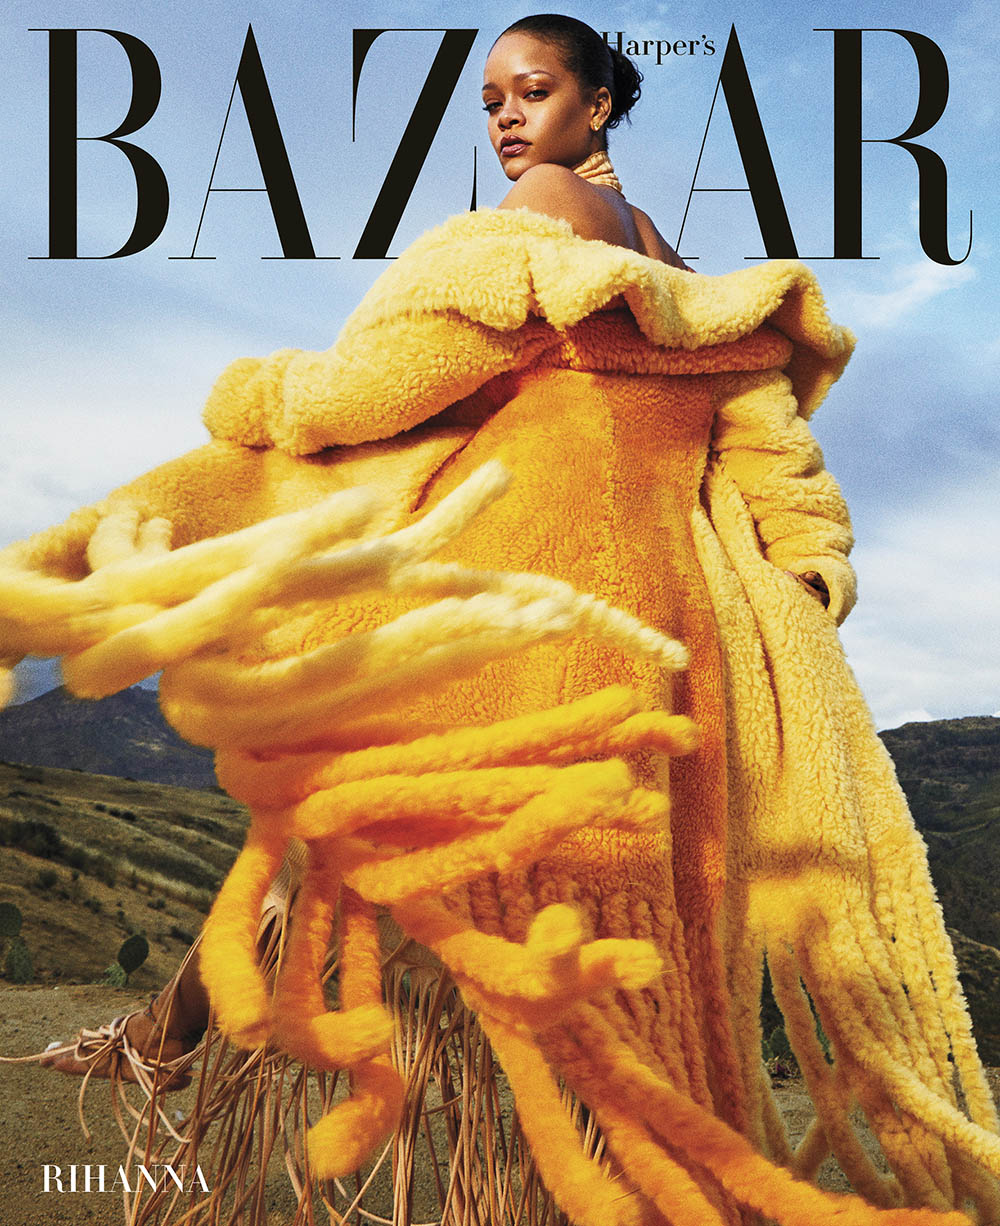 Rihanna covers Harper's Bazaar US & UK September 2020 by Gray SorrentiRihanna covers Harper's Bazaar US & UK September 2020 by Gray Sorrenti